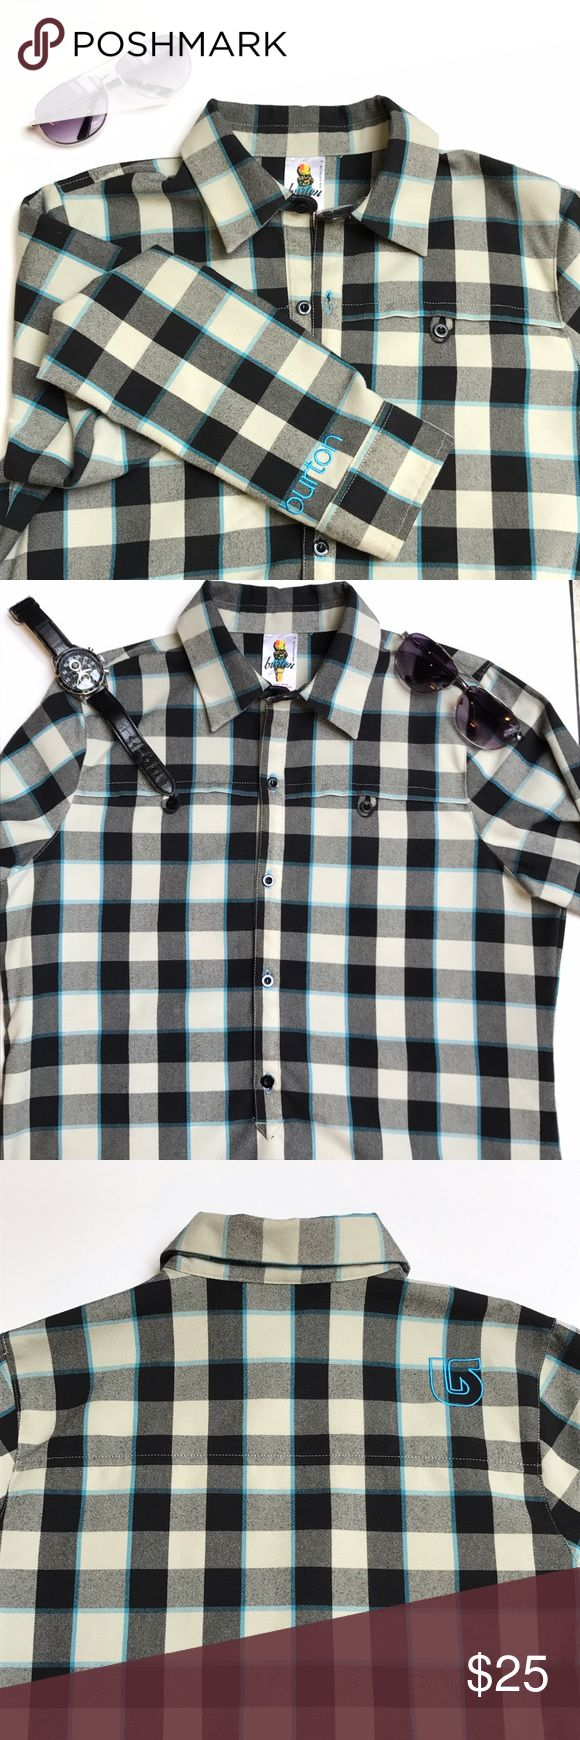 "Burton Dryride Cool Flavors Shirt Like New Medium This is a Burton Dryride Cool flavors line Shirt. Luke new conditions.... great condition. Size: Medium; Shoulder: 15.5""; Chest: 20.5""; Length: 30"" Burton Shirts Casual Button Down Shirts"